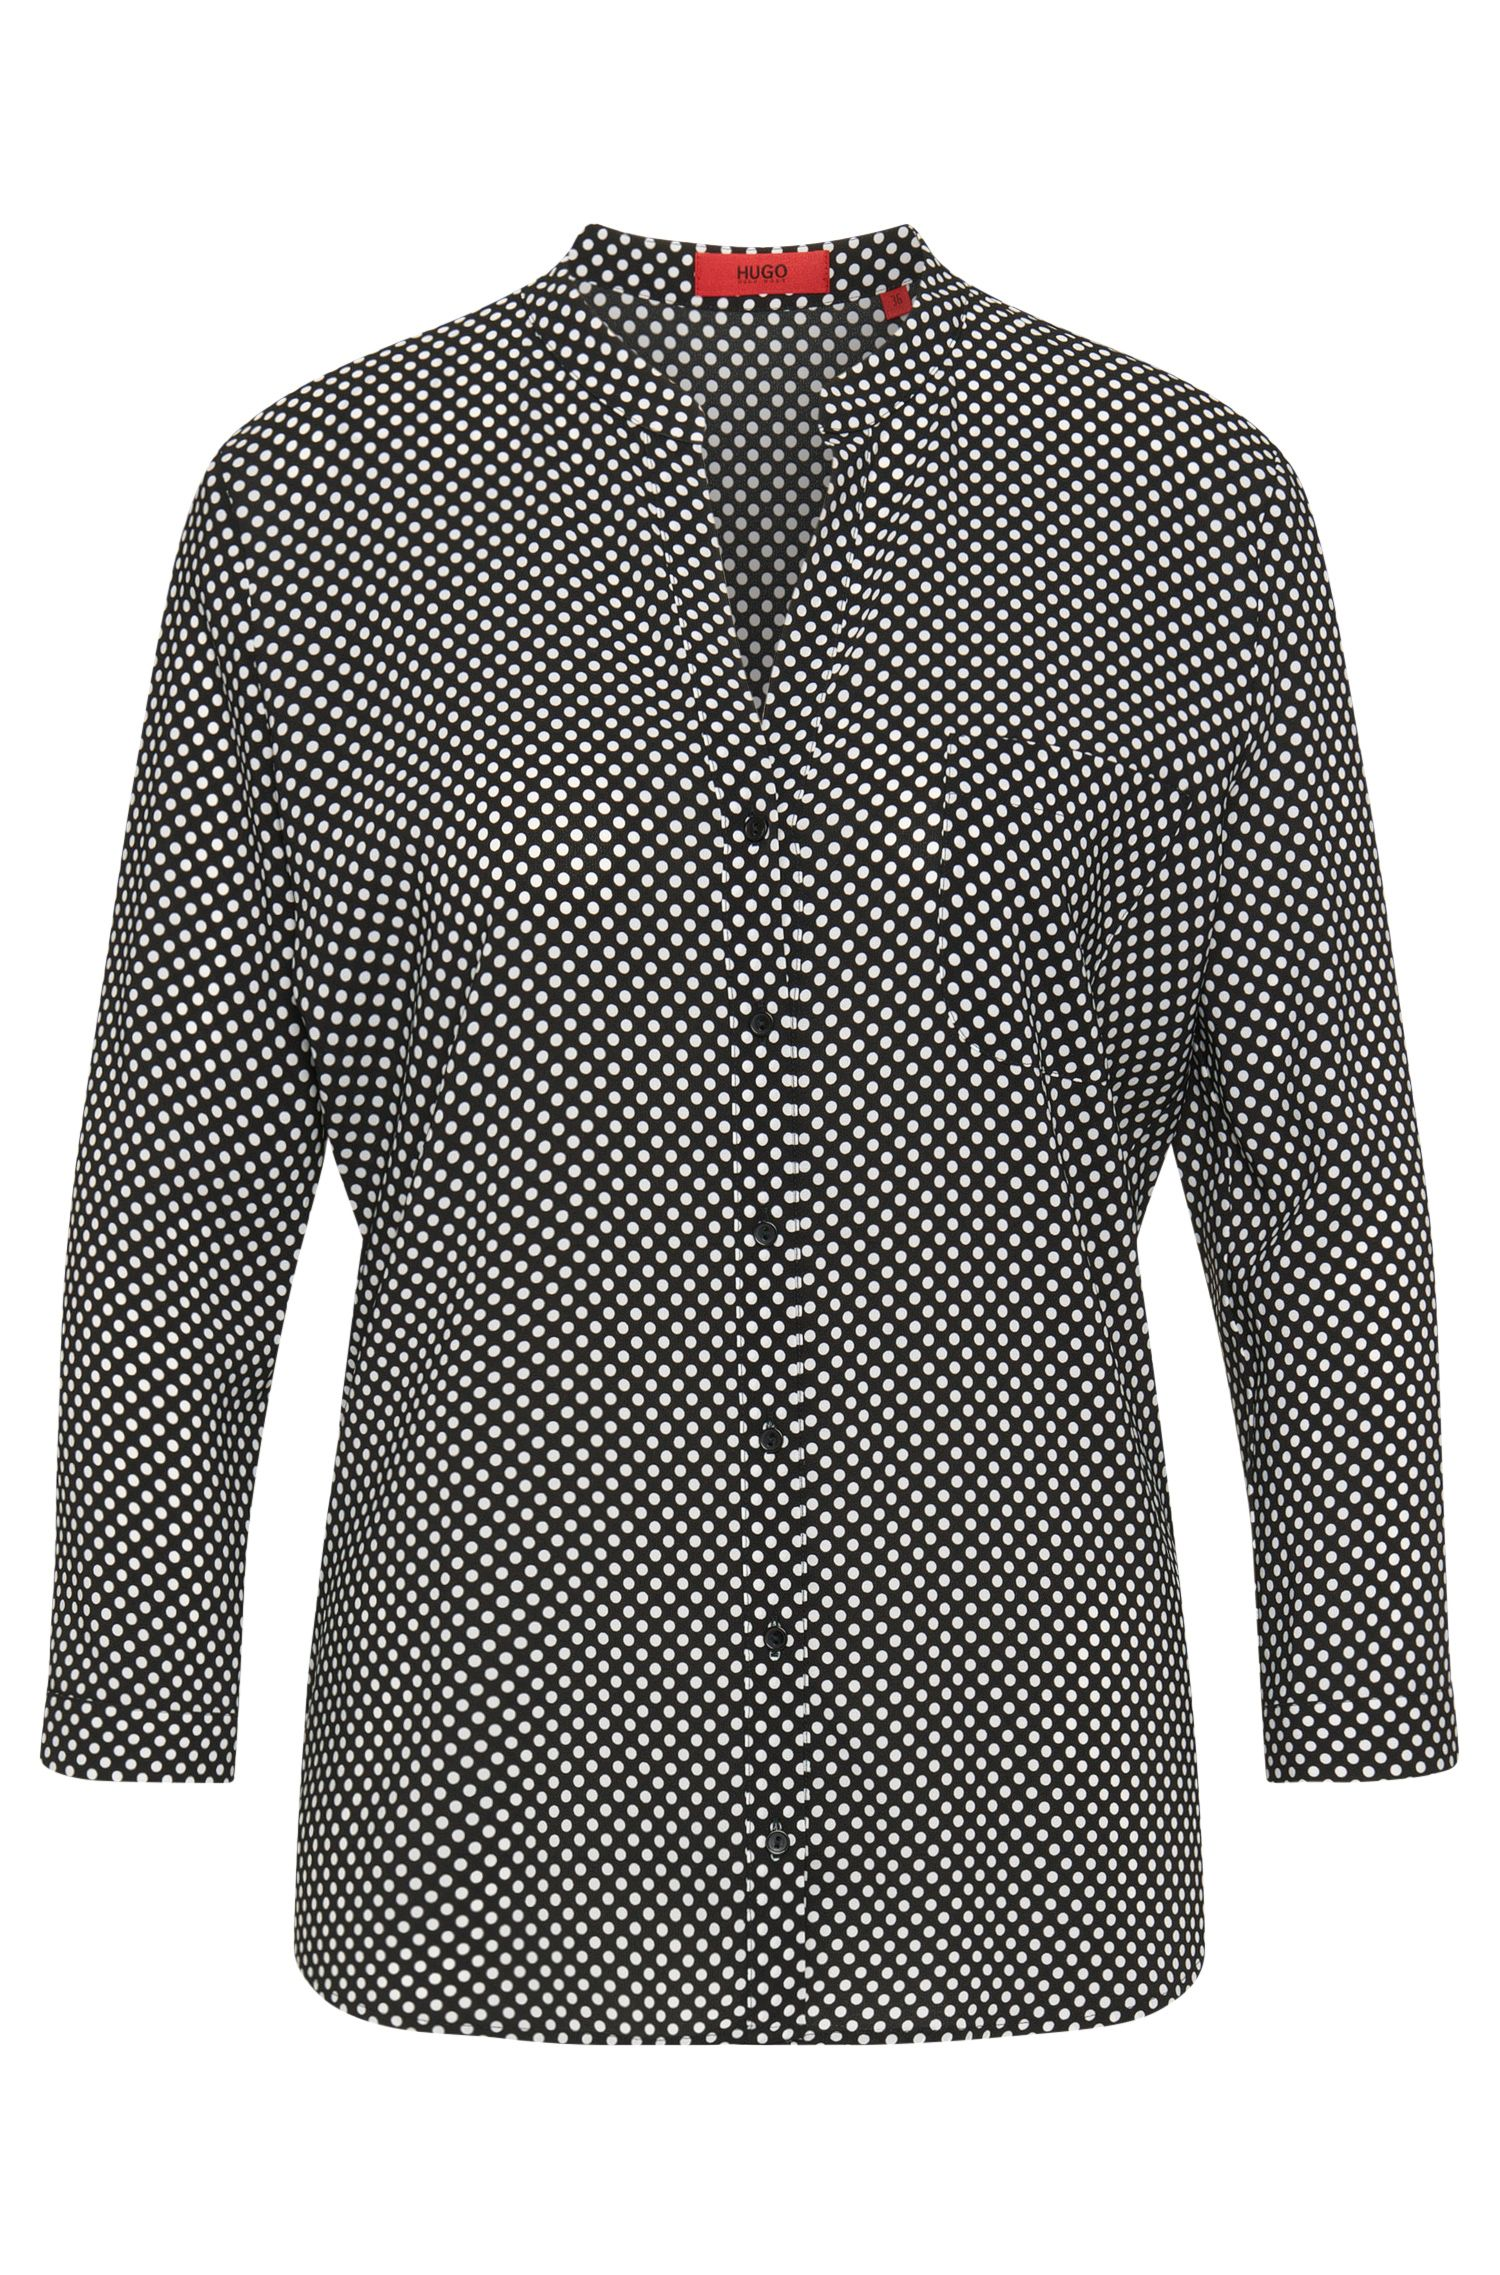 Blouse in stretch viscose with polka-dot design: 'Esille'